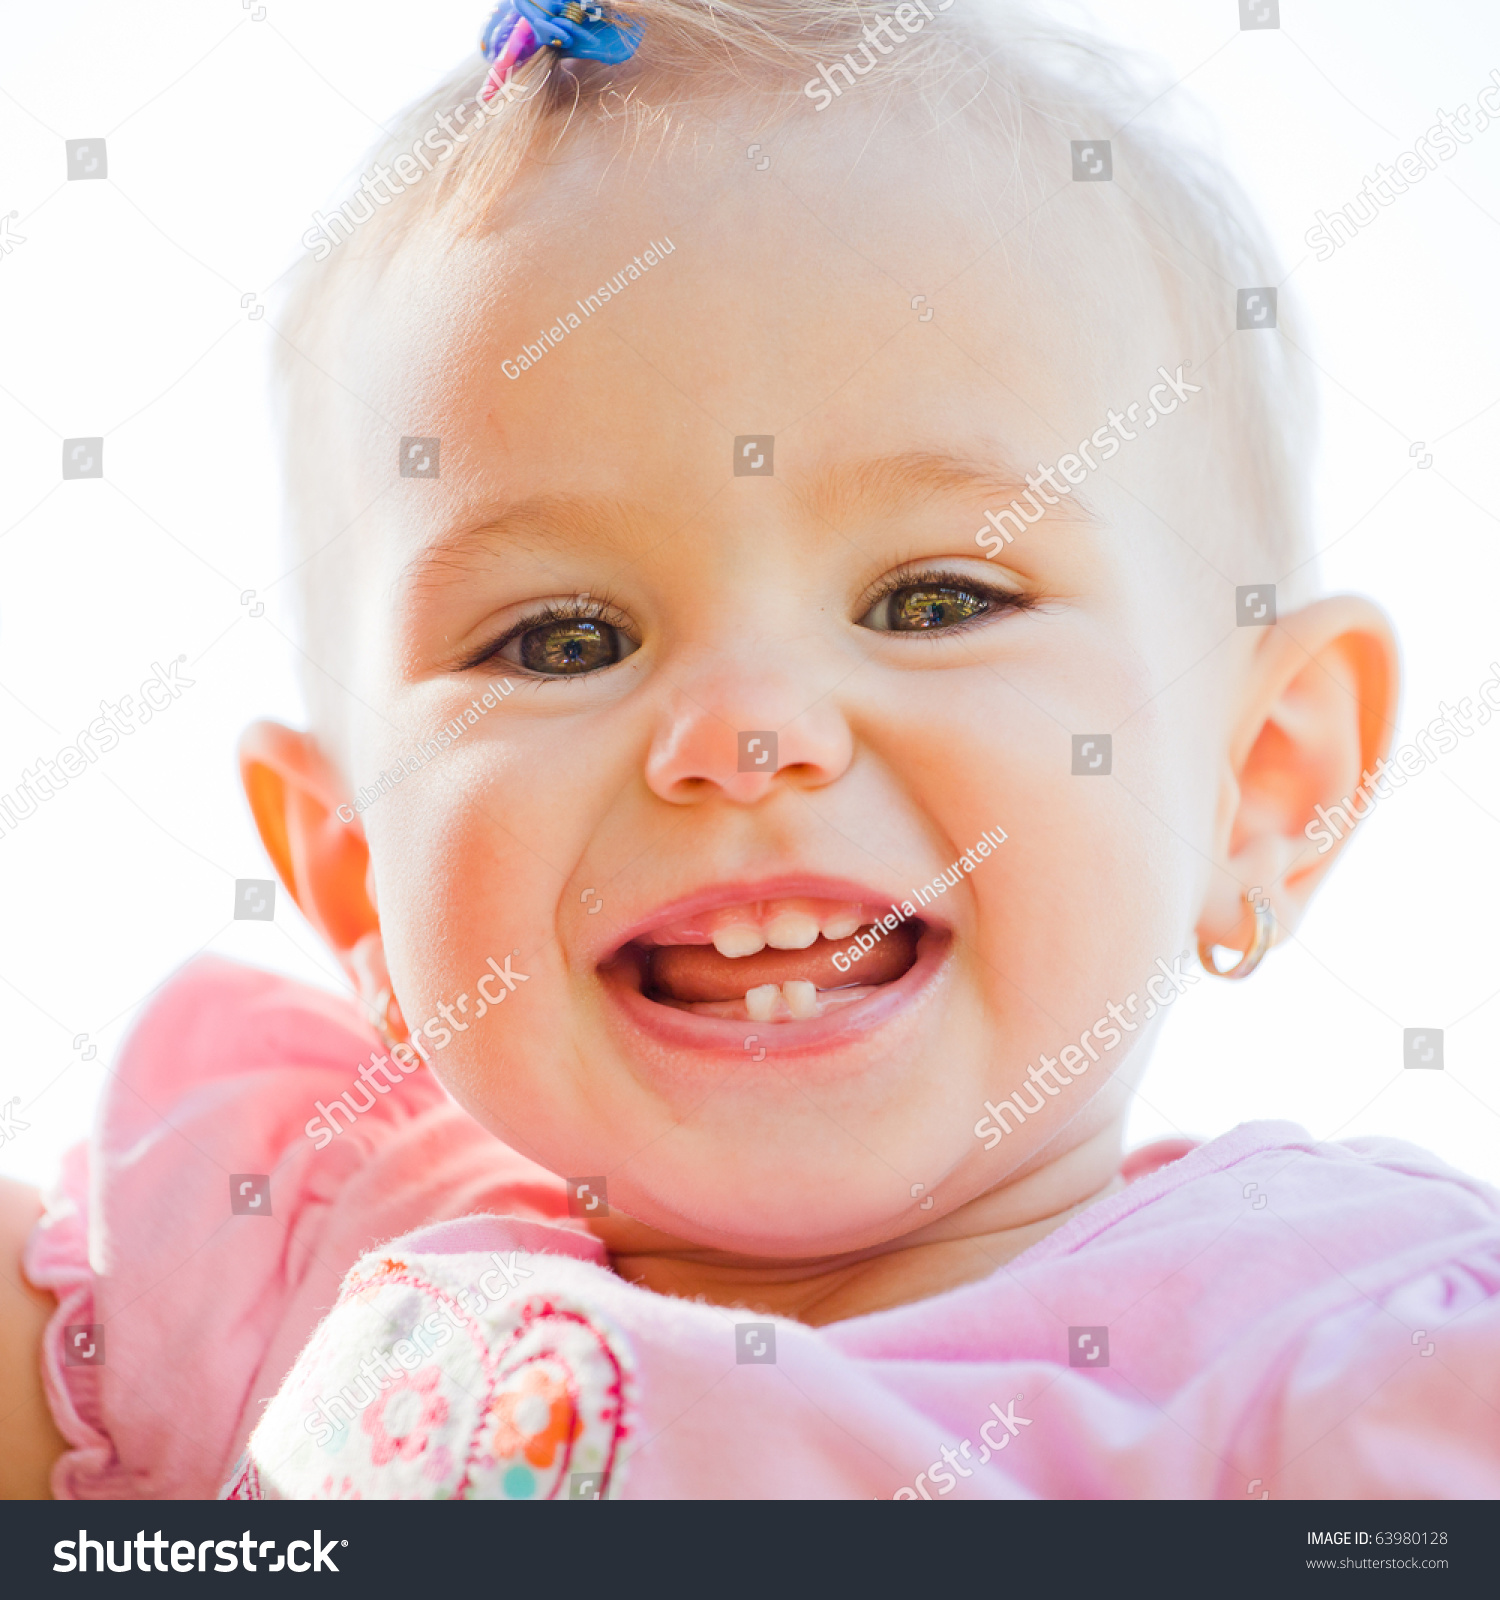 small baby girl spending time outdoor stock photo & image (royalty